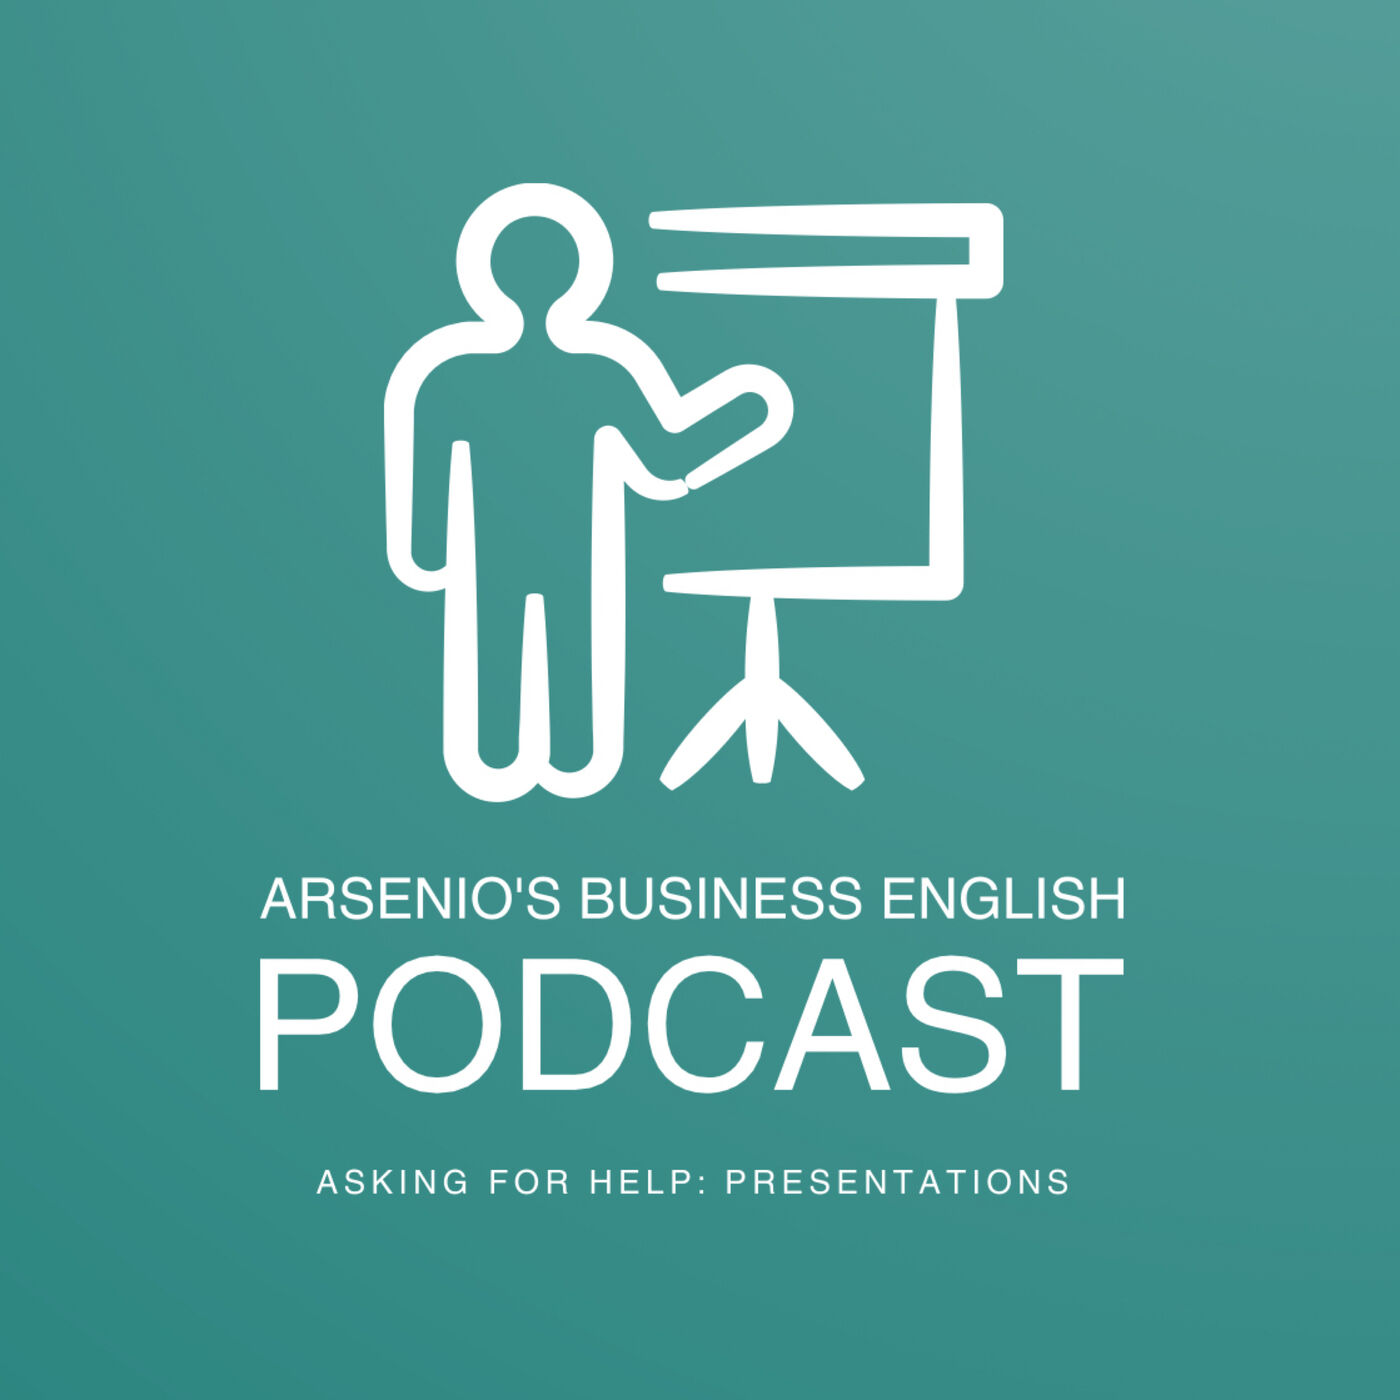 Arsenio's Business English Podcast | Season 6: Episode 39 | Asking for Help: Presentations